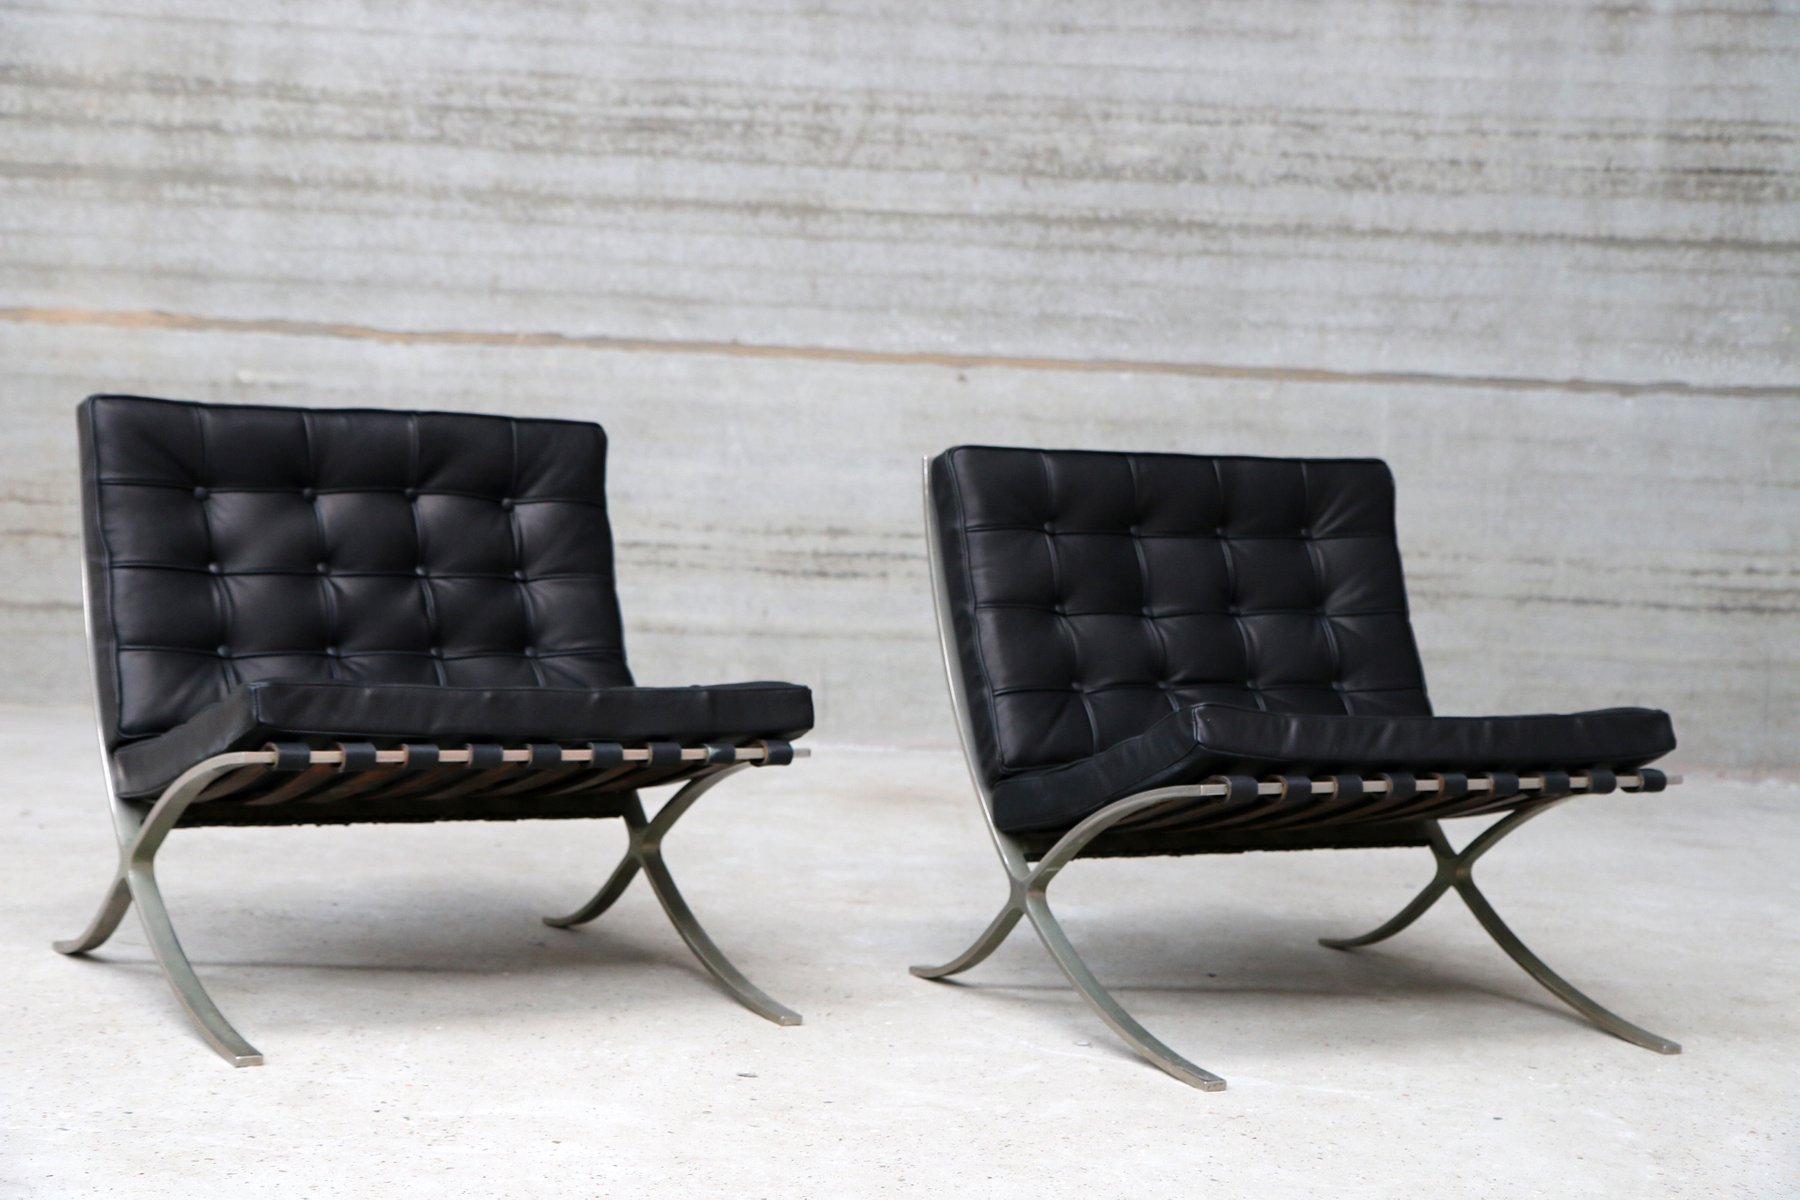 vintage barcelona sessel von ludwig mies van der rohe f r knoll 2er set bei pamono kaufen. Black Bedroom Furniture Sets. Home Design Ideas